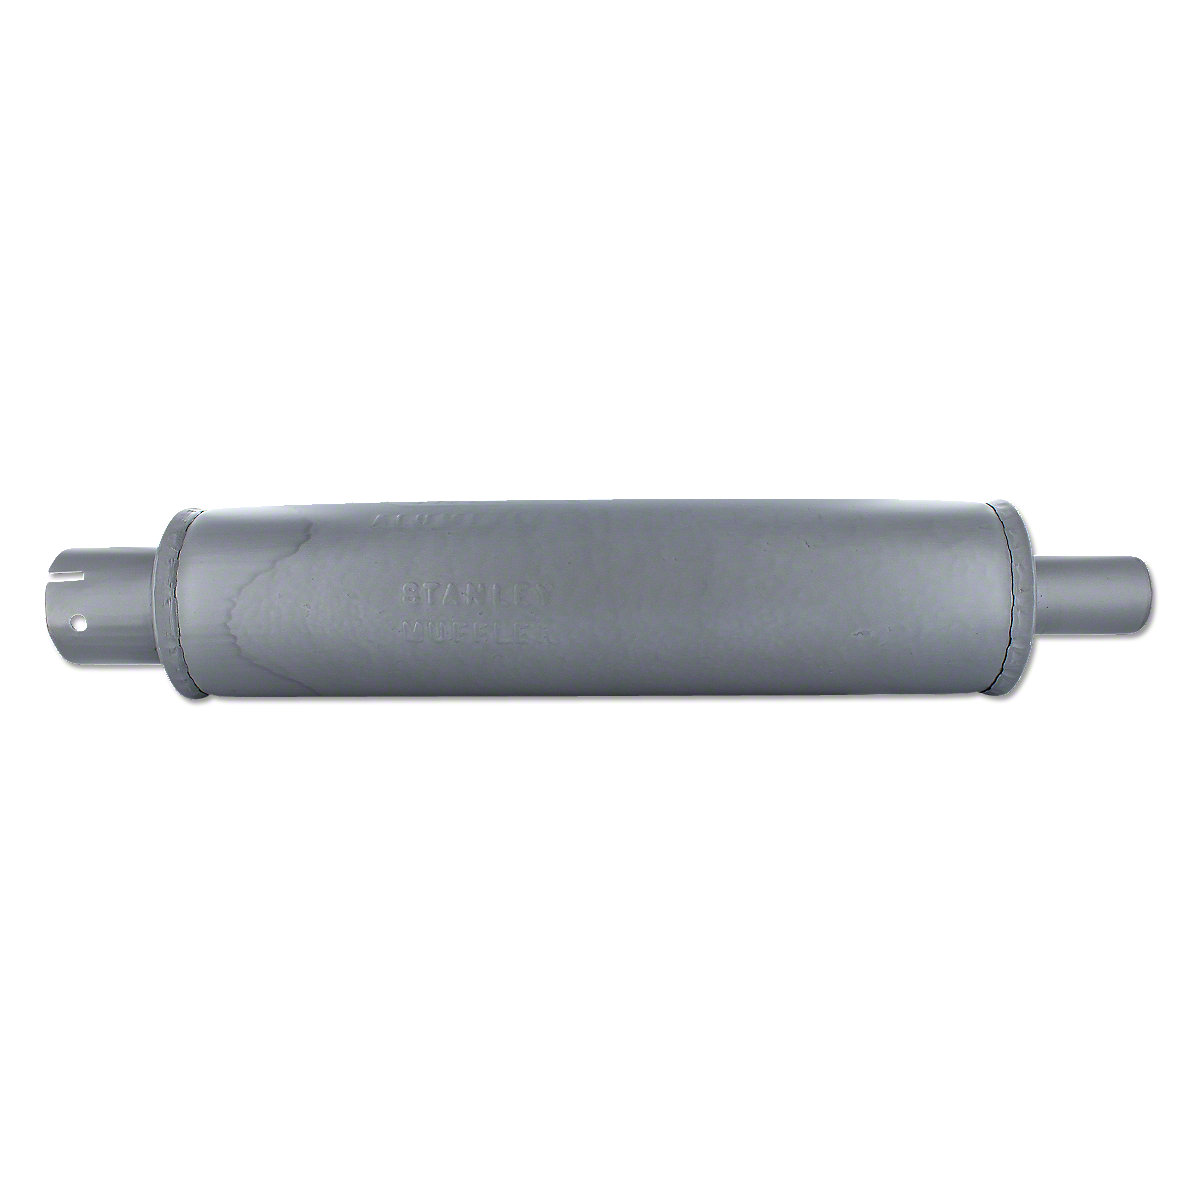 Horizontal Muffler For Massey Ferguson: 65.